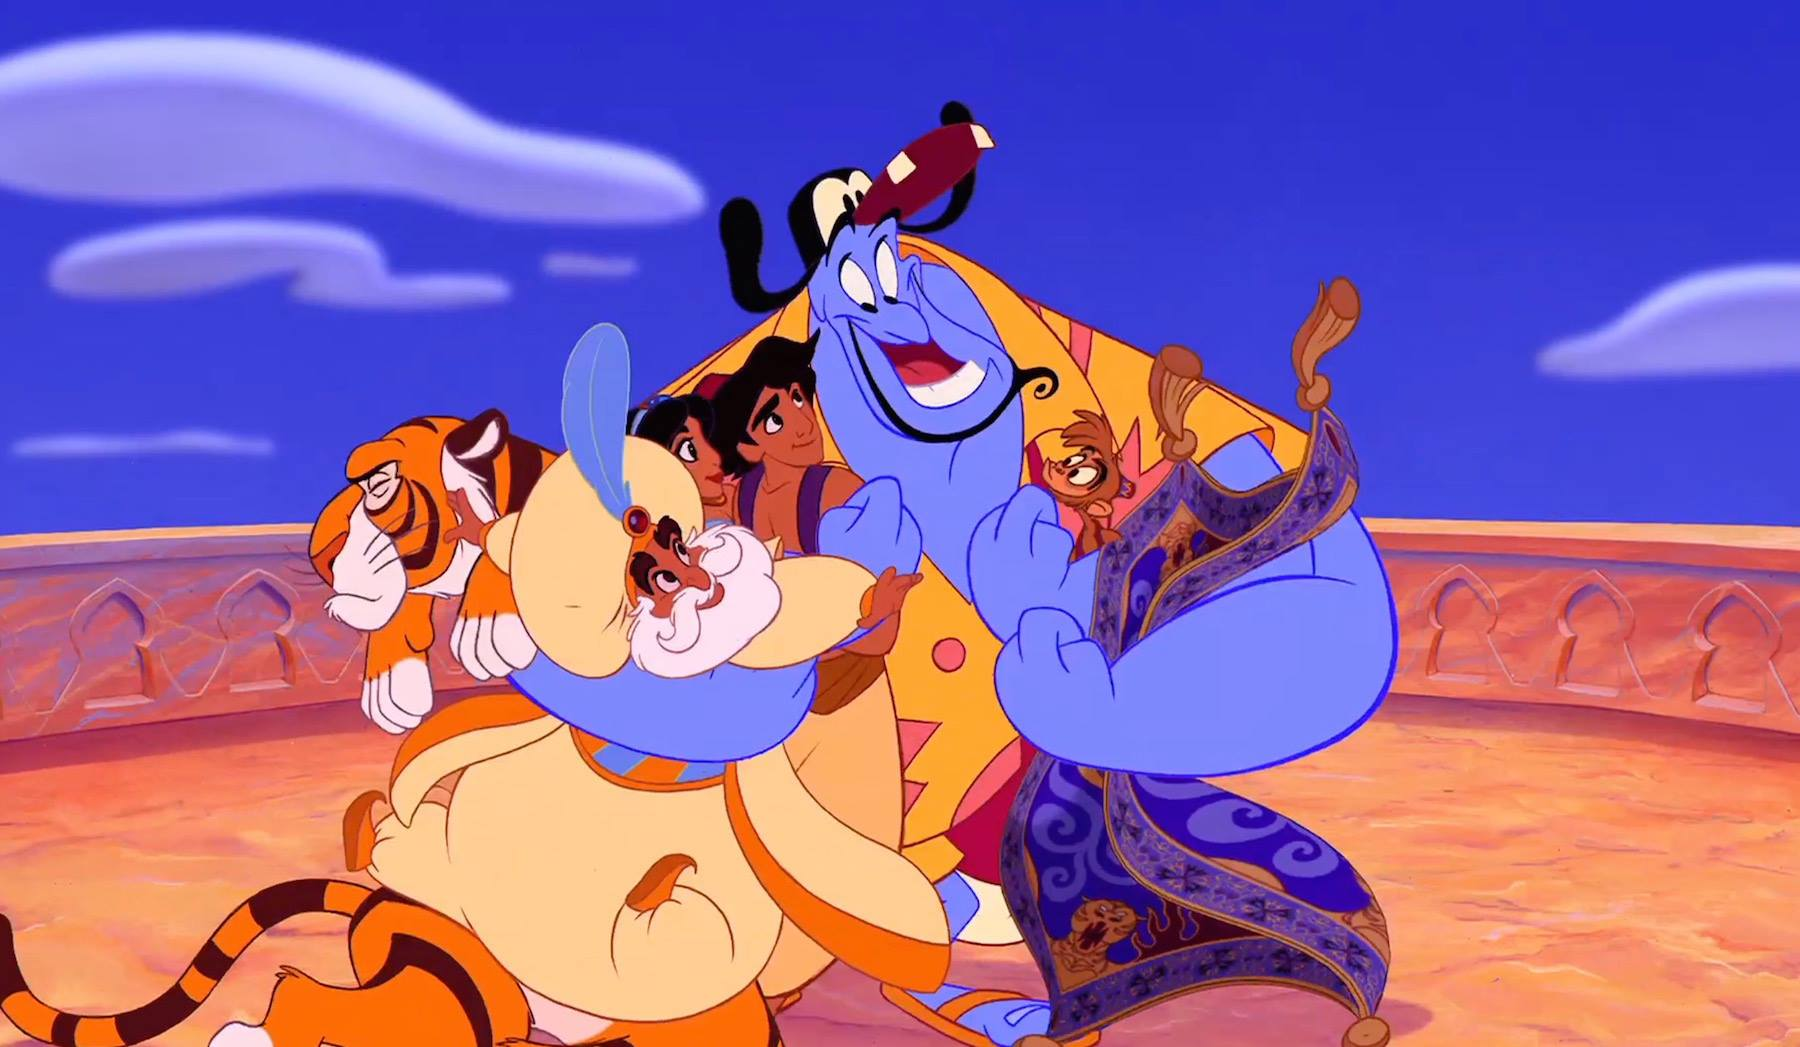 """Agrabah is not a real place. (Photo via Disney's """"Aladdin"""" Facebook page.)"""